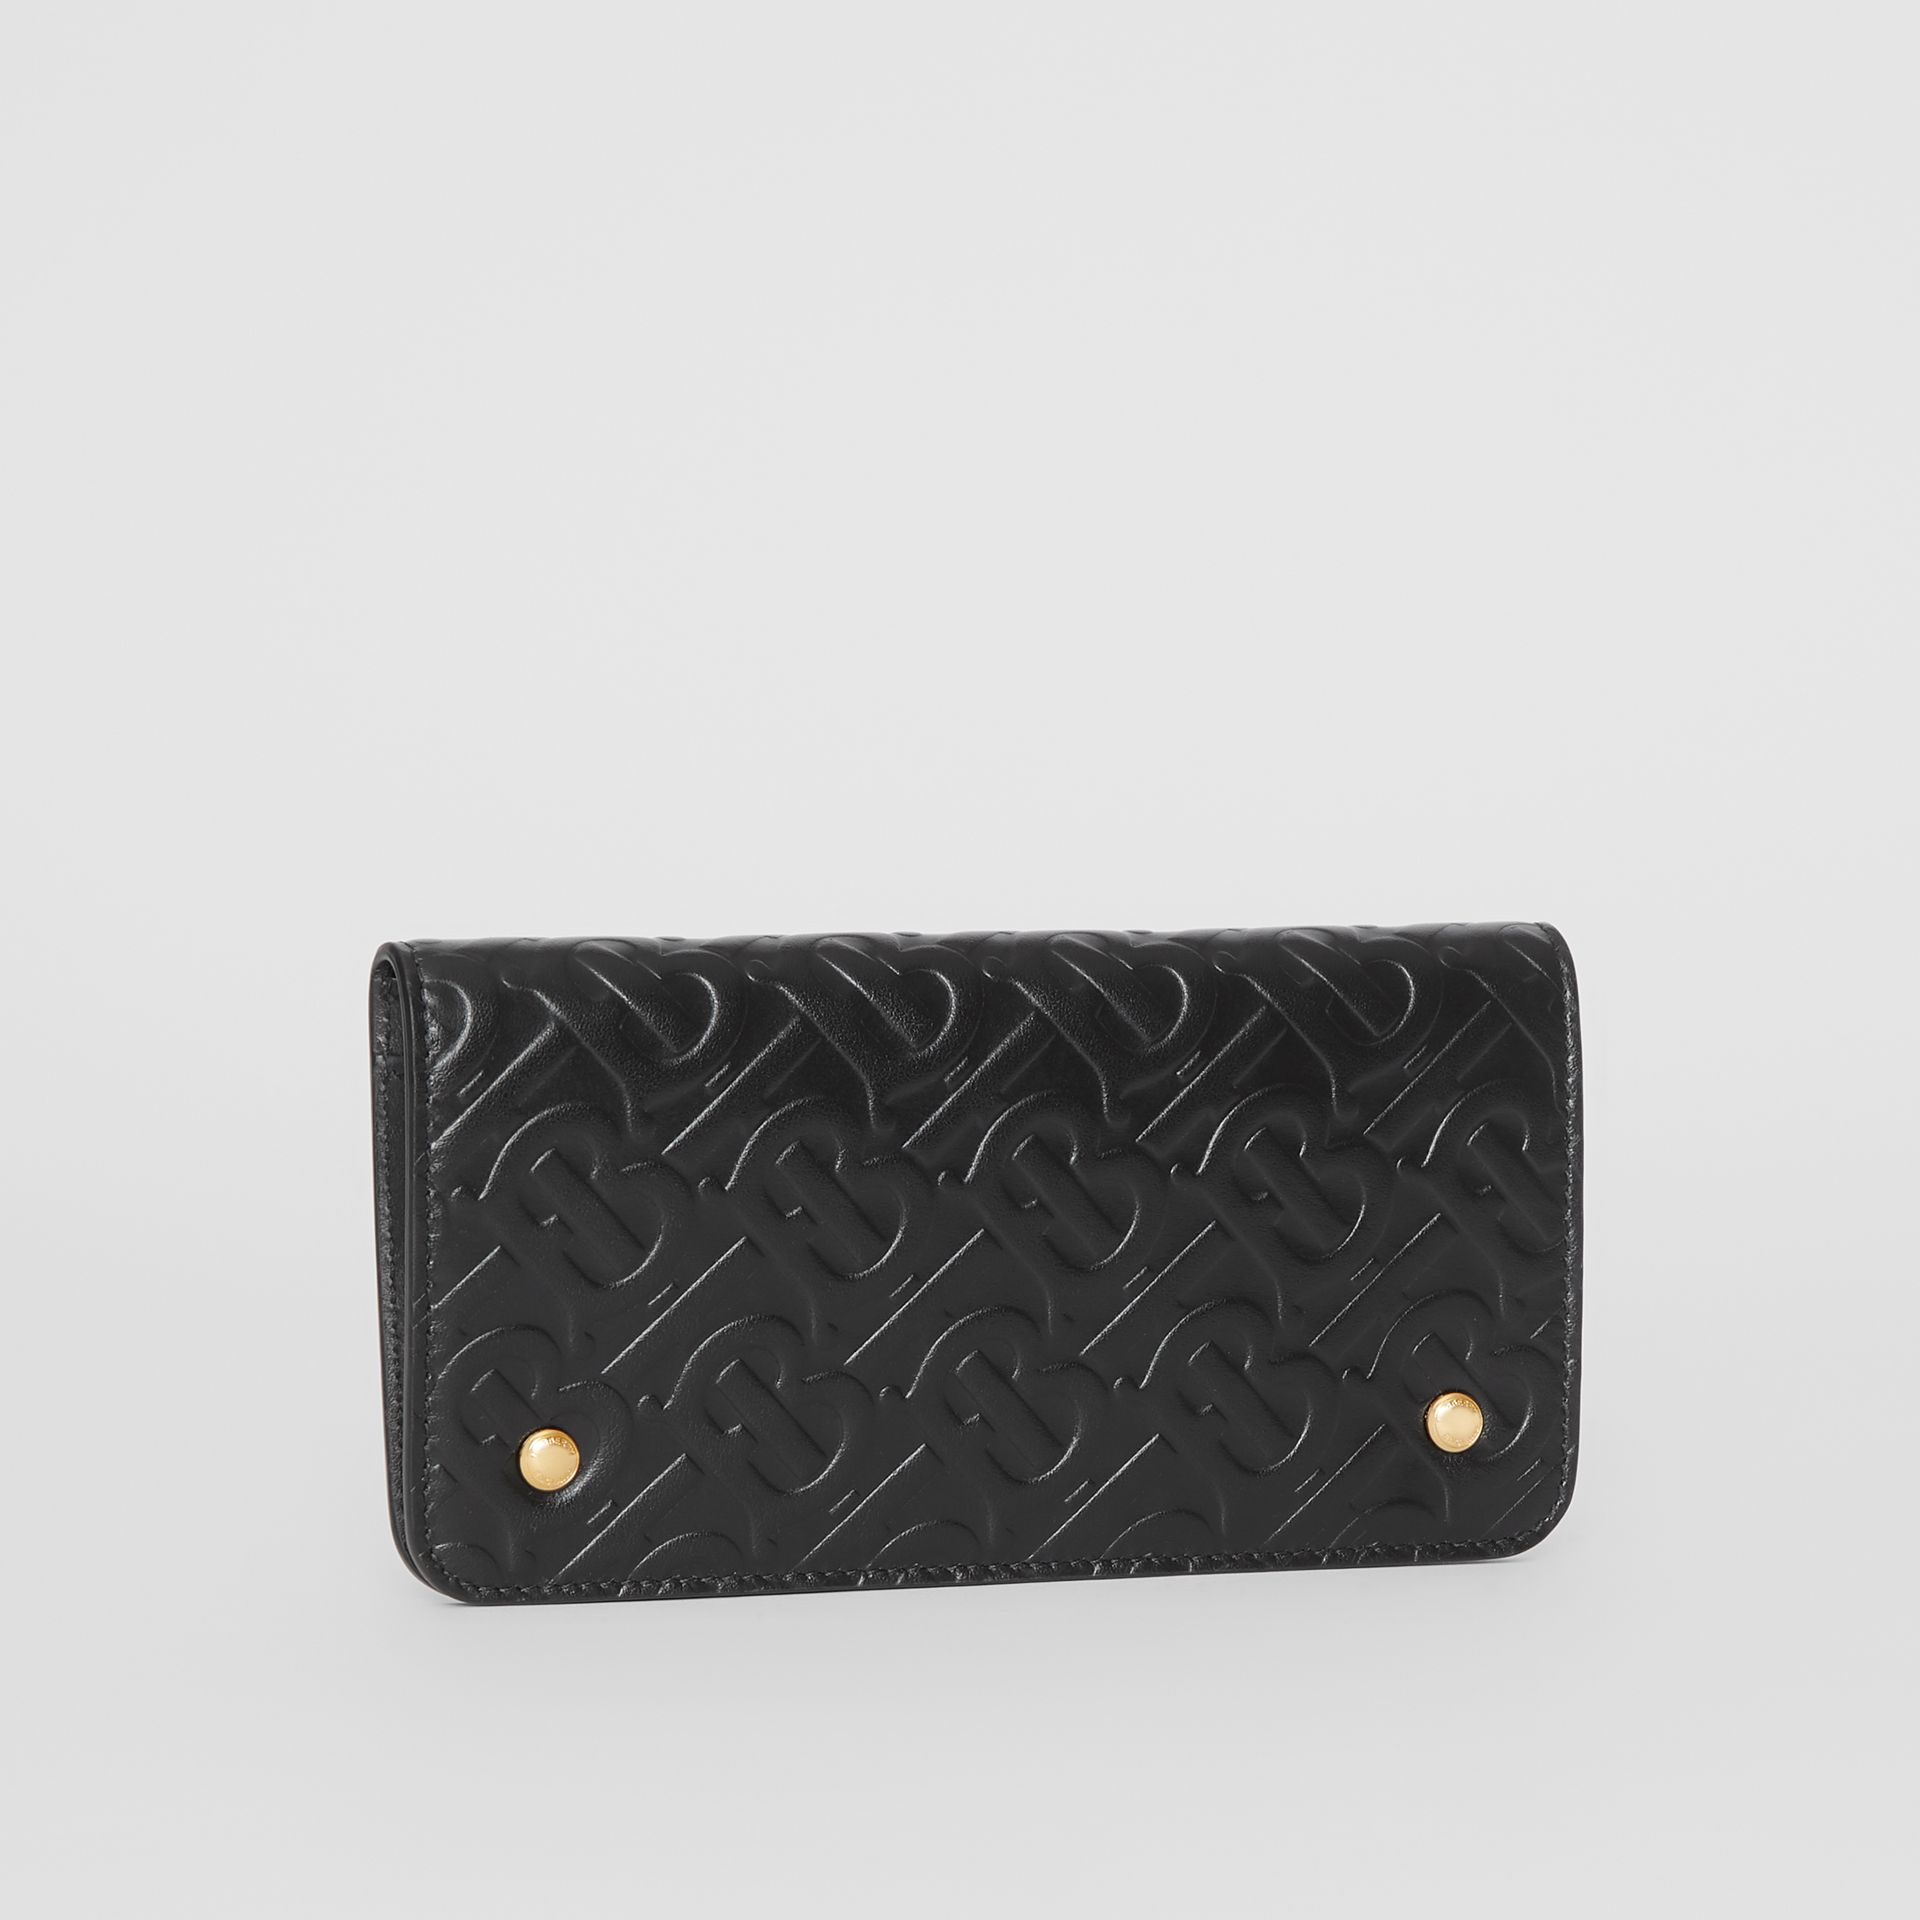 Monogram Leather Phone Wallet in Black | Burberry - gallery image 3